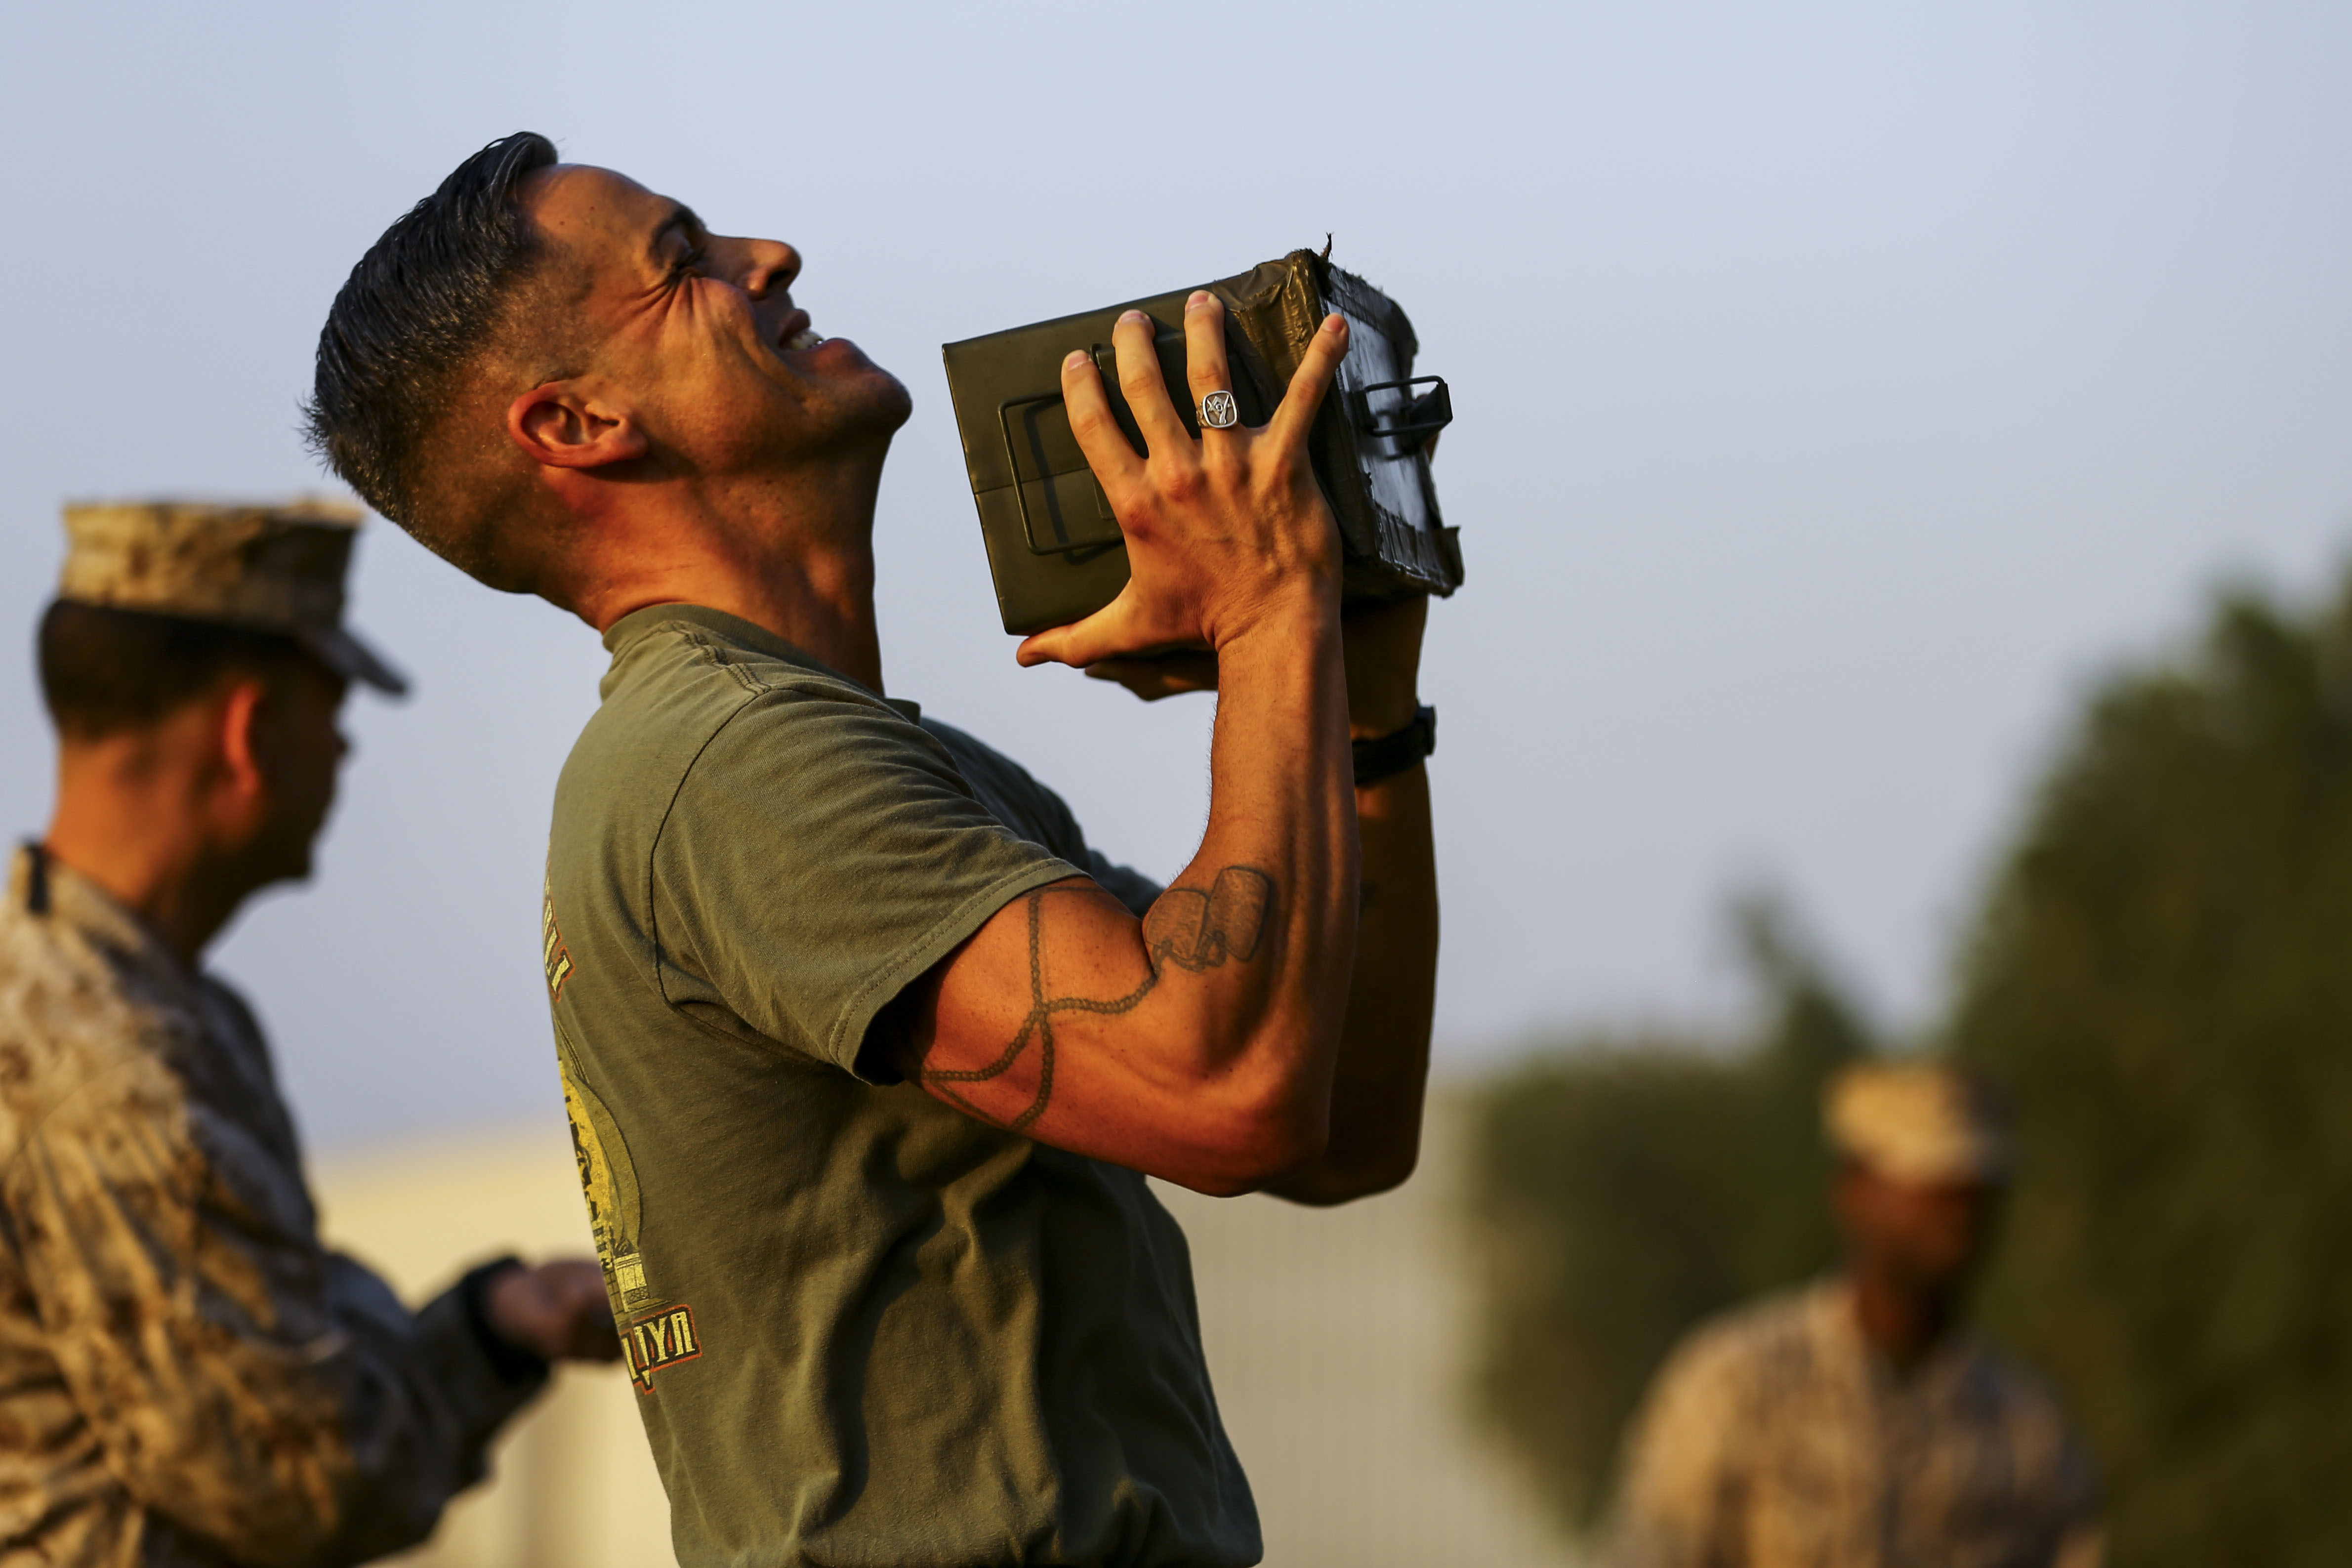 5th Marine Expeditionary Brigade Combat Fitness Test